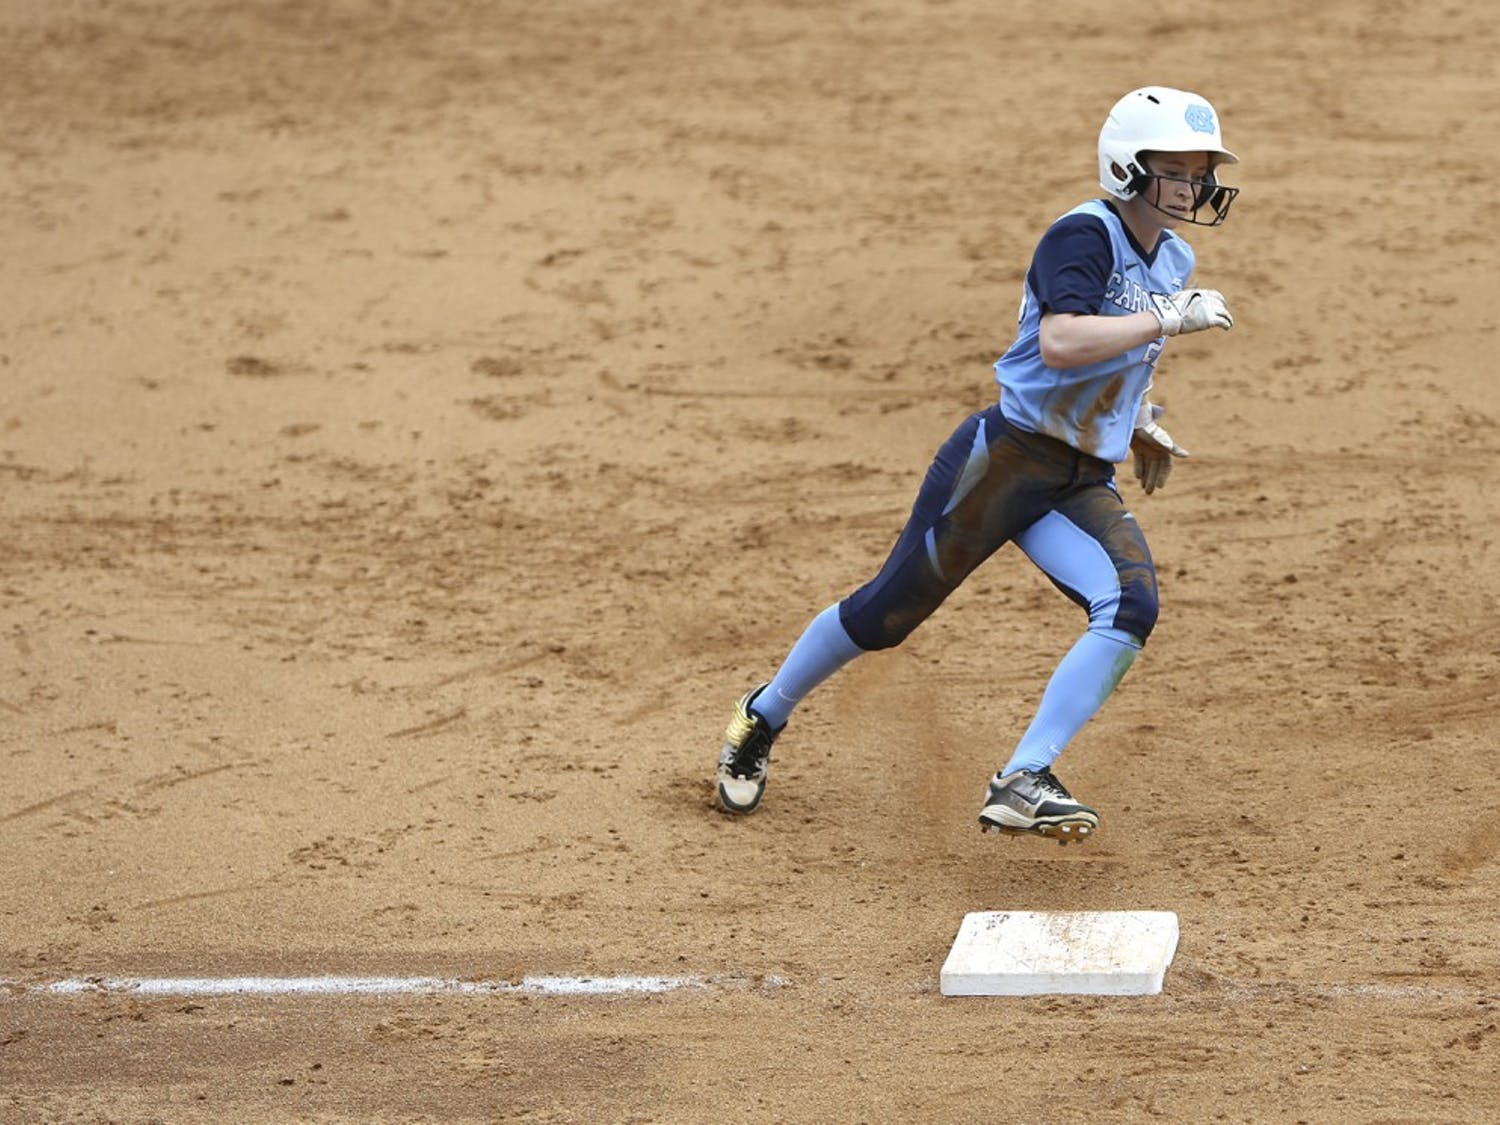 UNC's softball team took on FSU Saturday afternoon to start a double header at Anderson Softball Stadium.